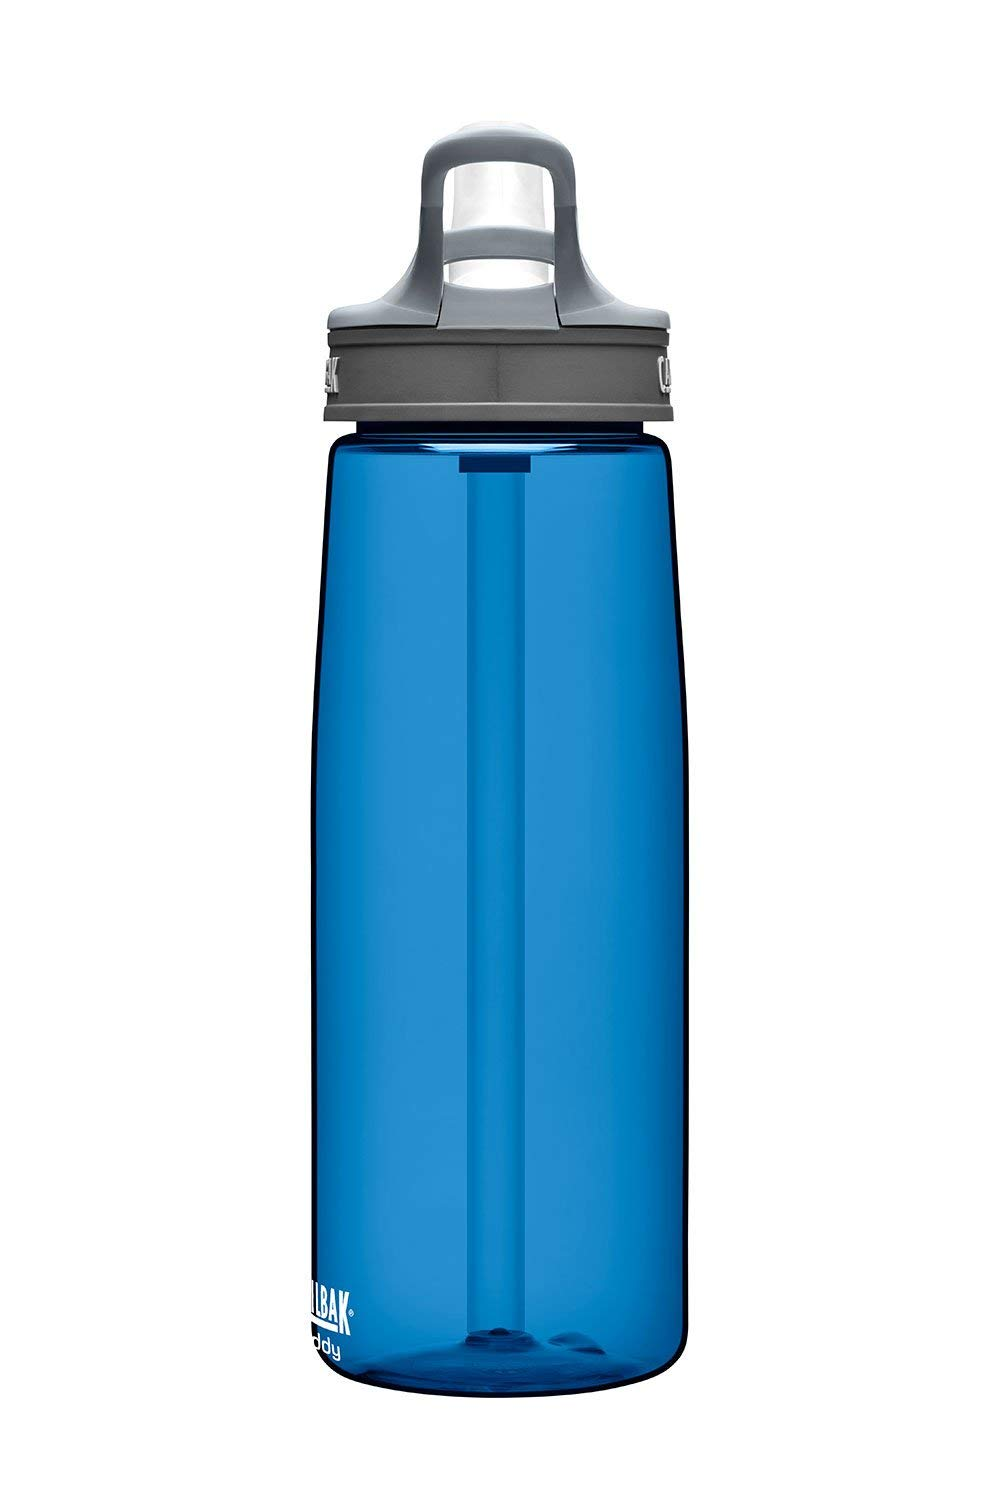 camelbak water bottle made for spill proof outdoor adventure and camping needs